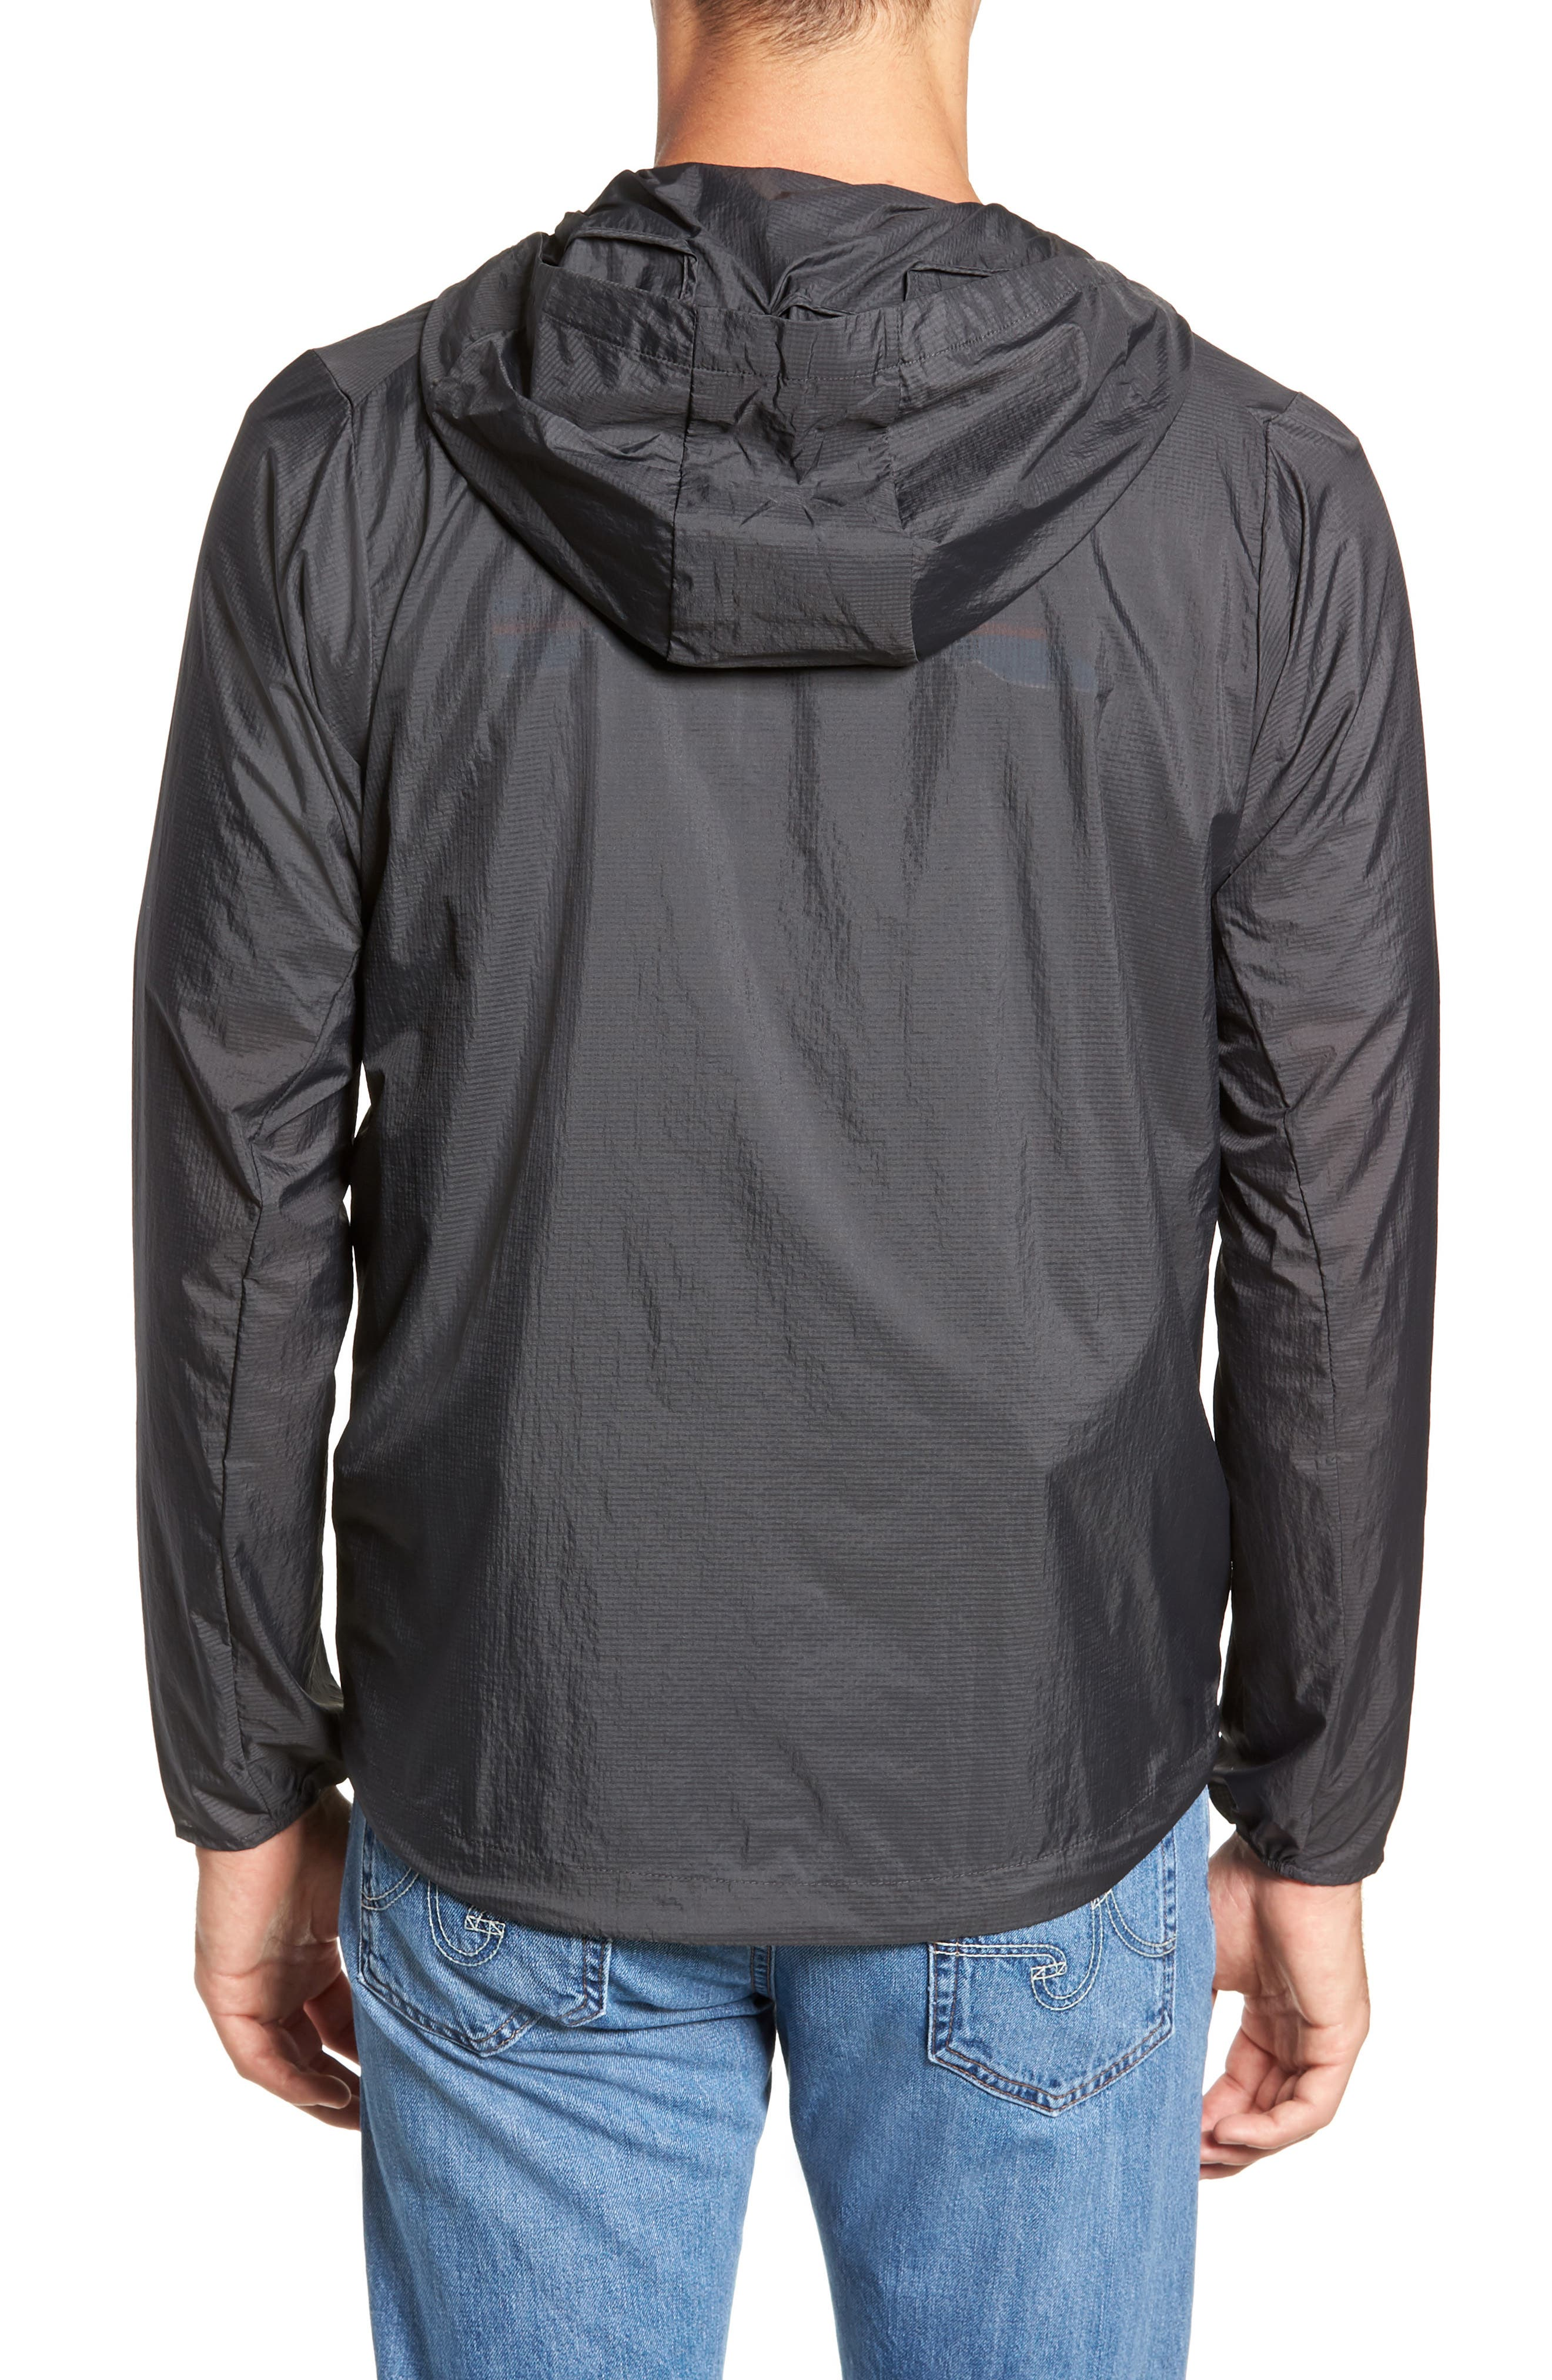 'Houdini' Slim Fit Water Repellent Hooded Jacket,                             Alternate thumbnail 2, color,                             FORGE GREY/ FORGE GREY